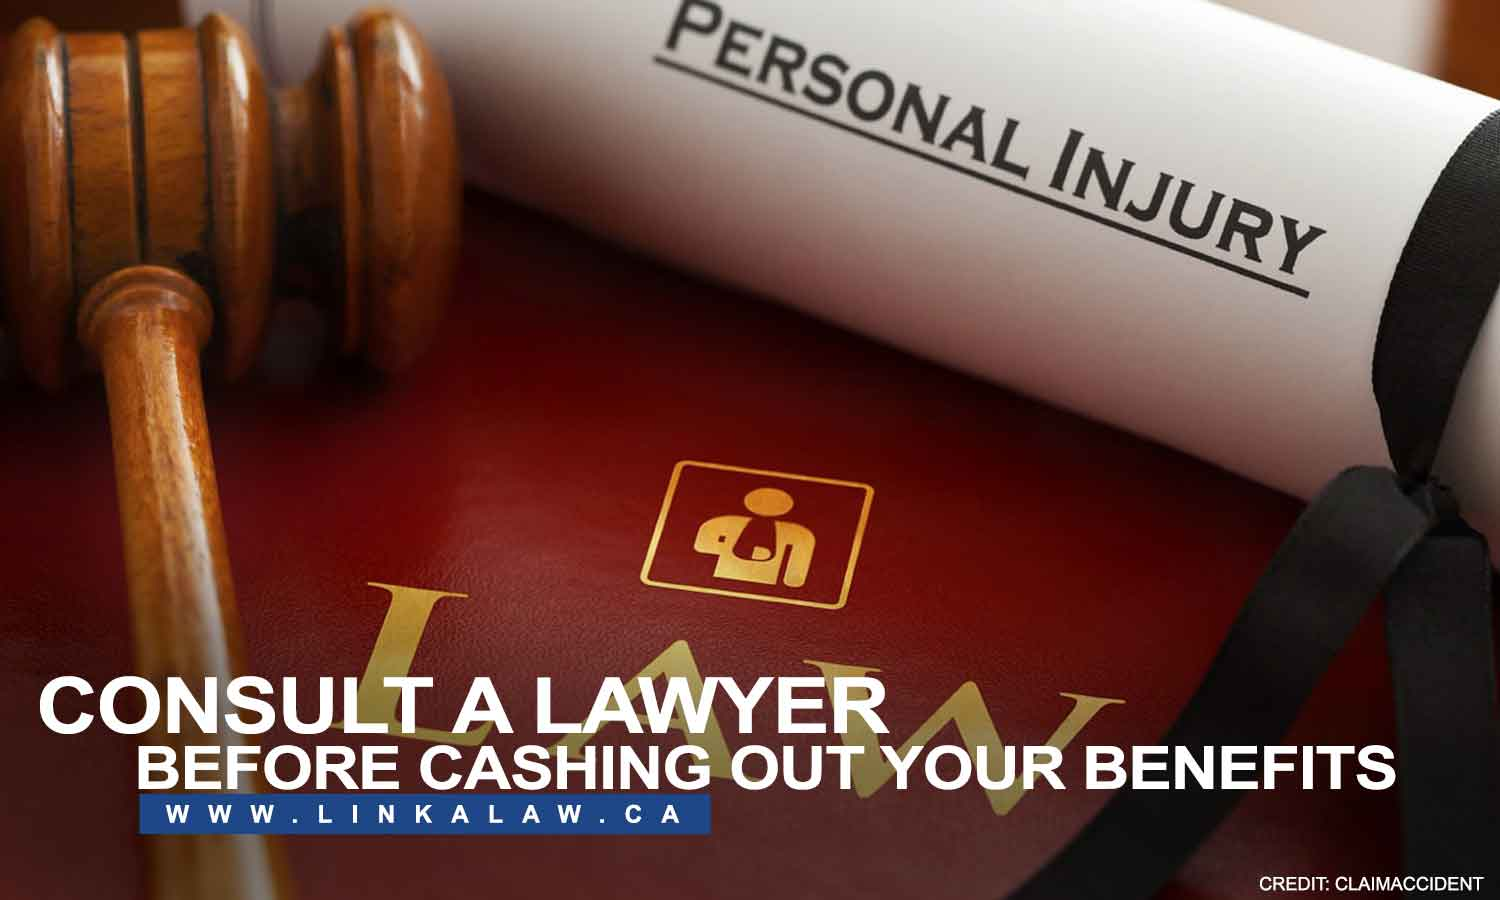 Consult a lawyer before cashing out your benefits